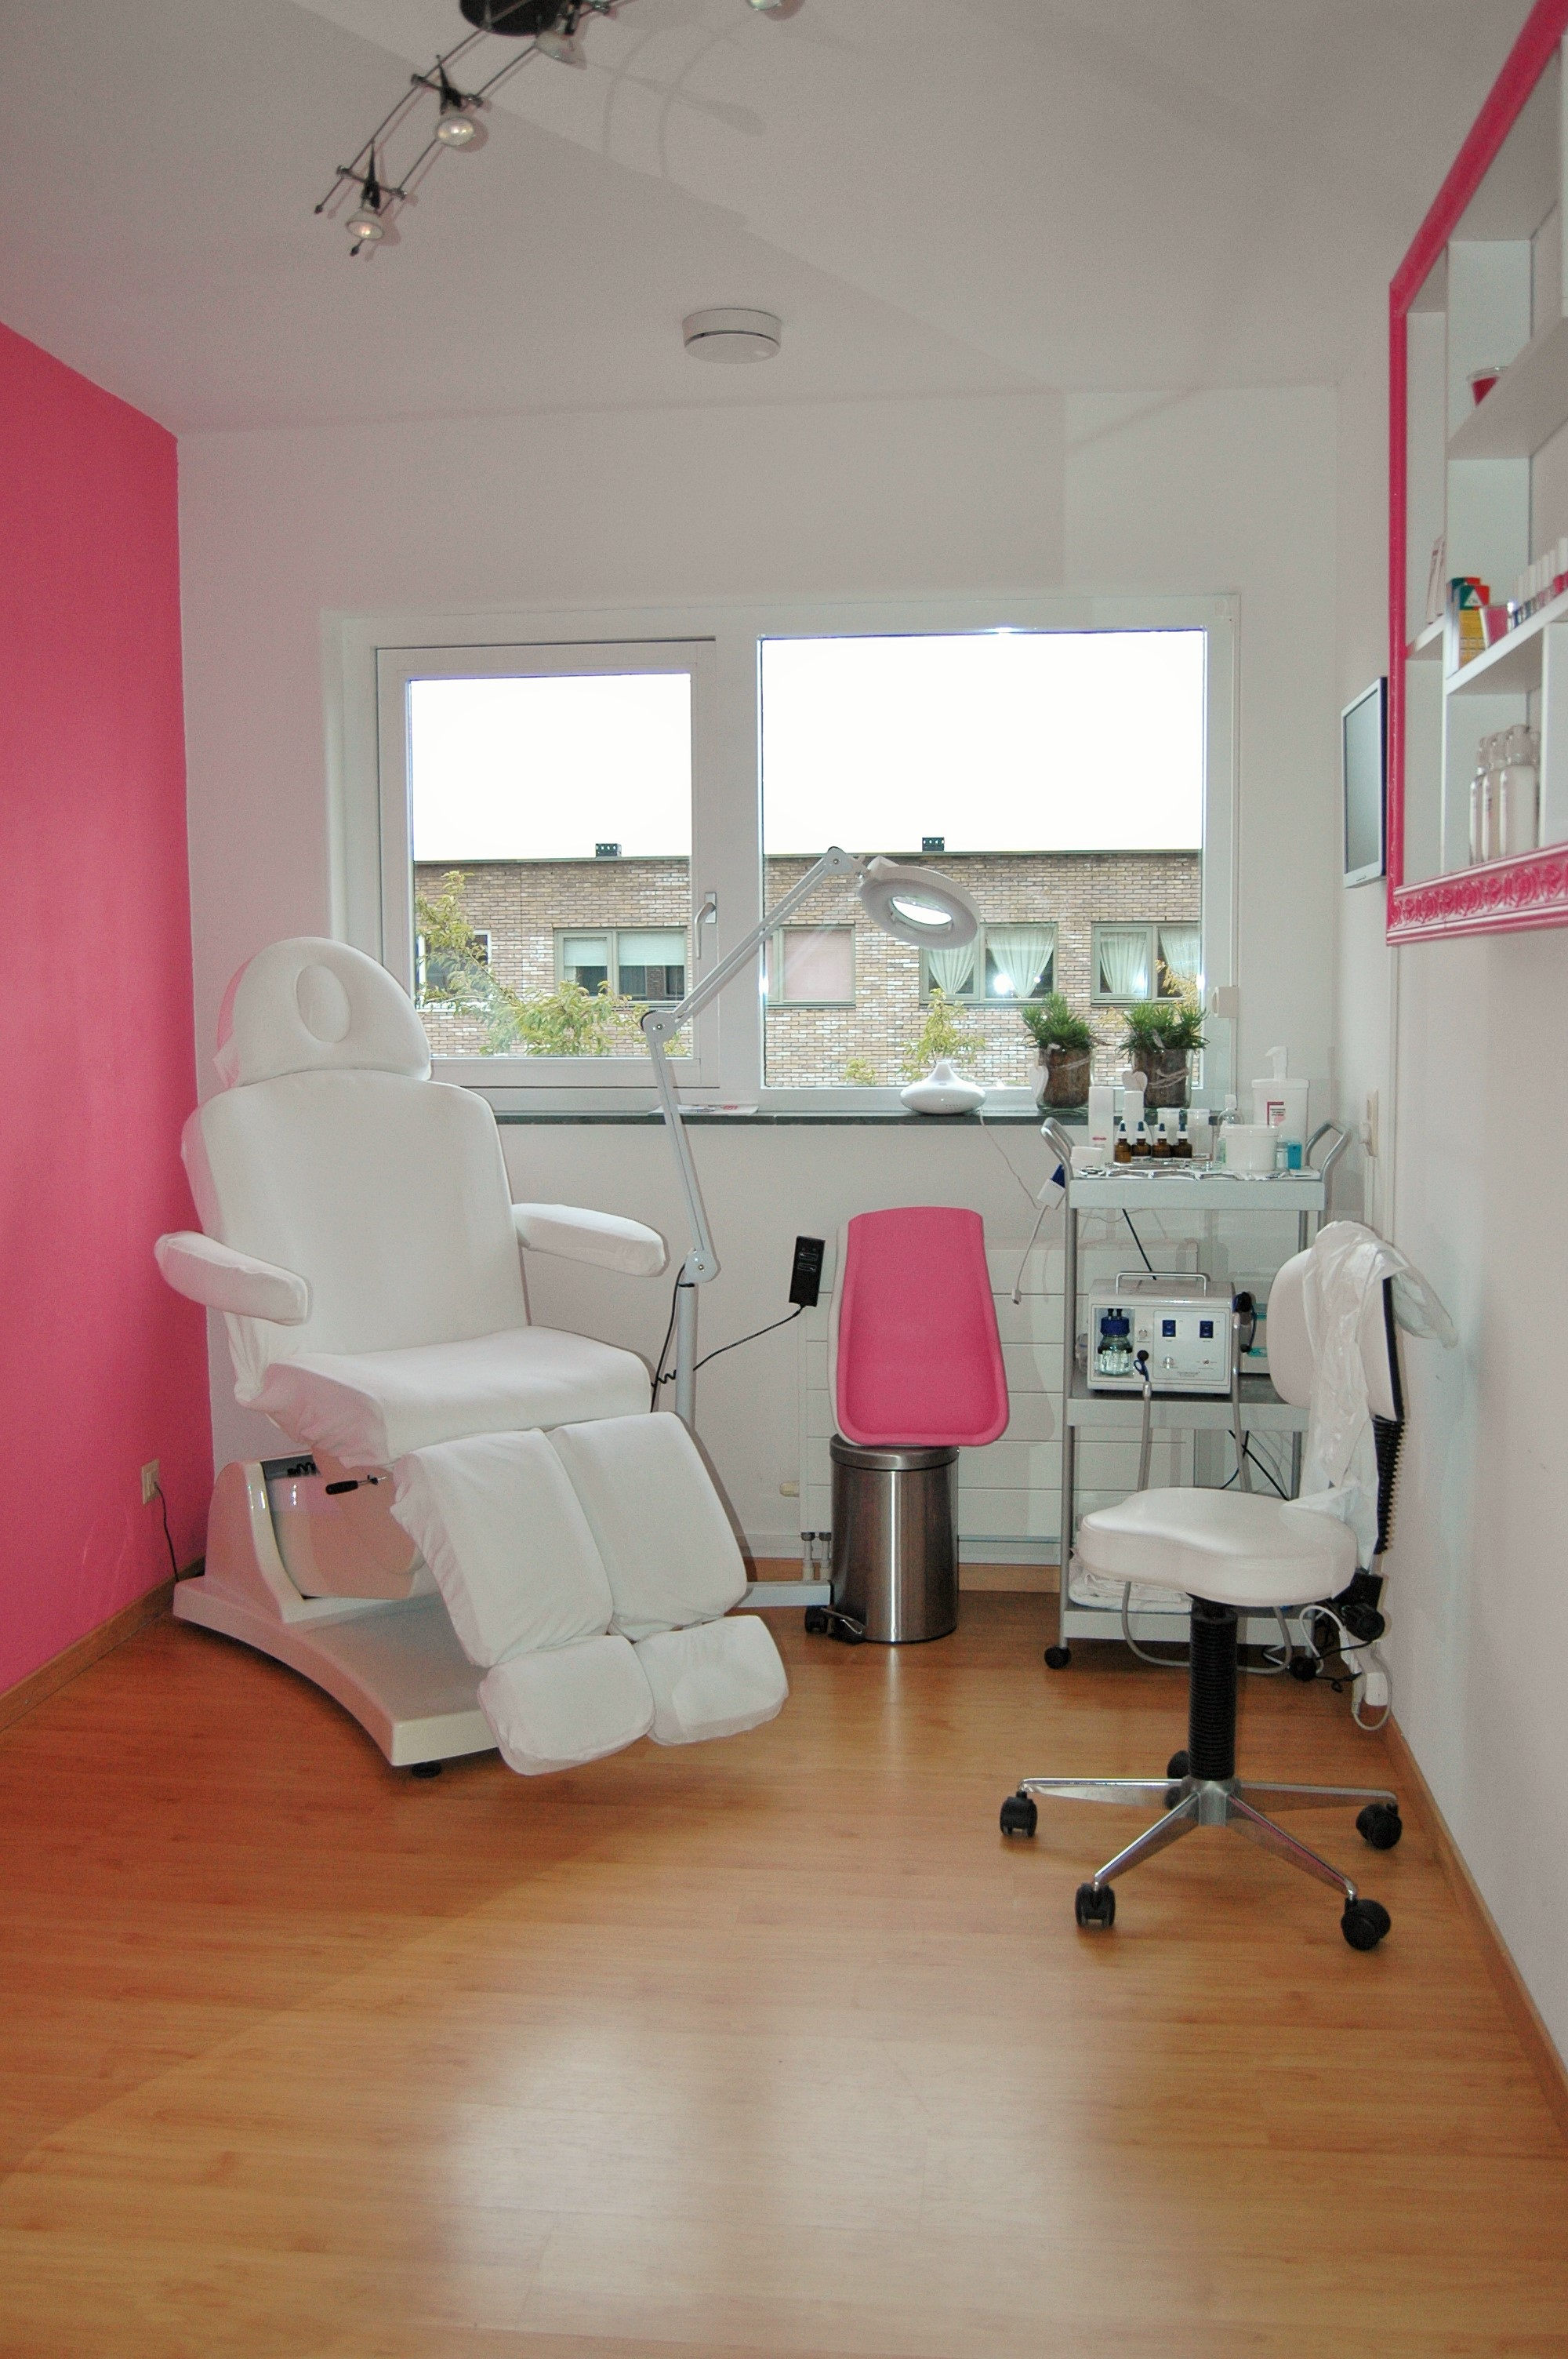 Pedicure Salon Pedicure Salon Liwonne Te Berkel En Rodenrijs Pijnacker